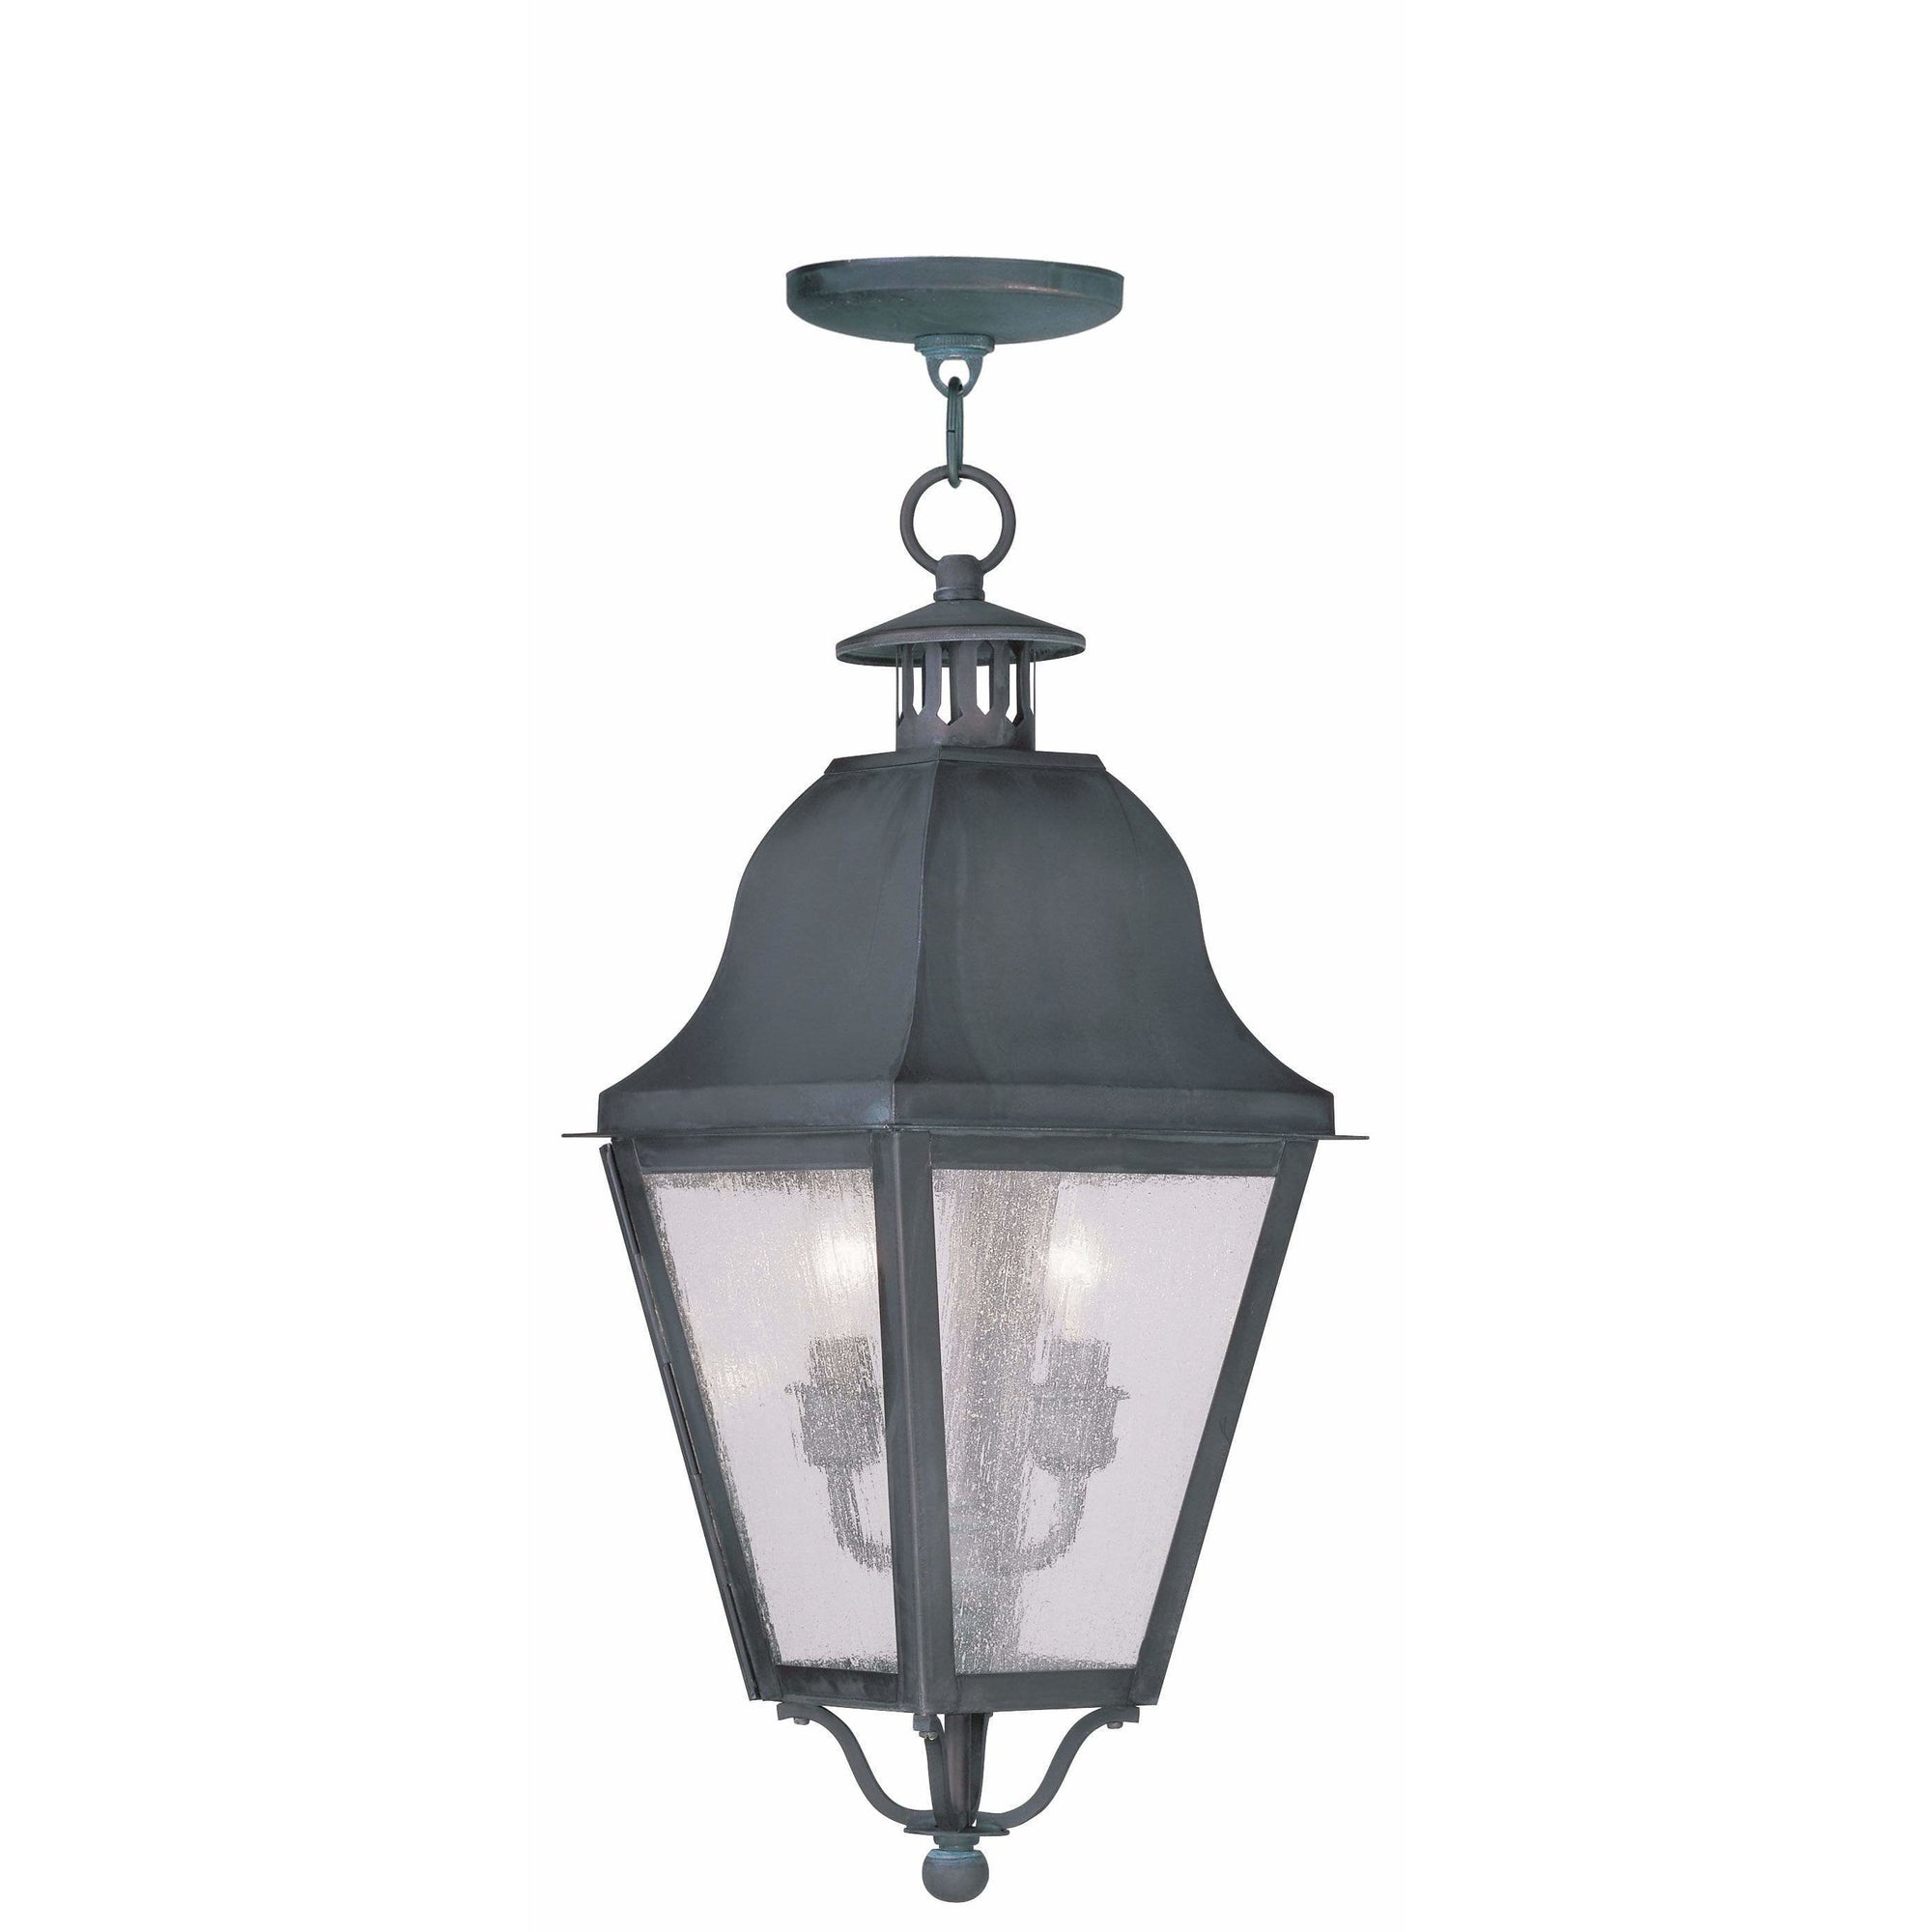 Livex Lighting Outdoor Pendants Lanterns Charcoal / Seeded Glass Amwell Charcoal Outdoor Pendant Lantern  By Livex Lighting 2546-61